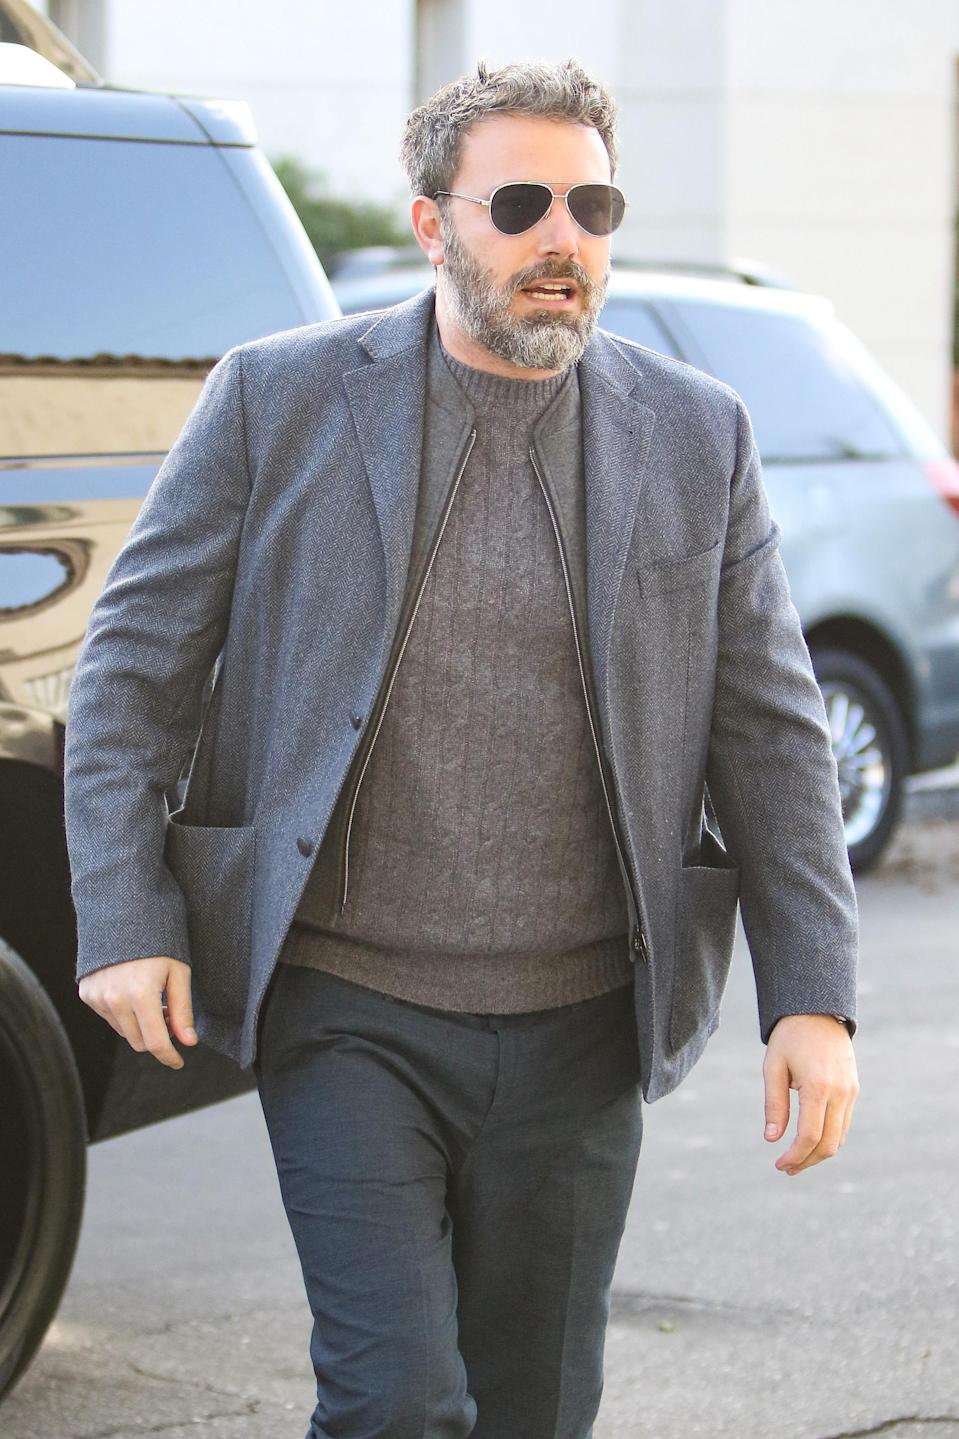 """<p>As the number of women accusing former Weinstein Company executive Harvey Weinstein of sexual misconduct <a rel=""""nofollow"""" href=""""https://www.yahoo.com/celebrity/women-accused-harvey-weinstein-sexual-misconduct-far-005346895.html"""" data-ylk=""""slk:continued to grow;outcm:mb_qualified_link;_E:mb_qualified_link;ct:story;"""" class=""""link rapid-noclick-resp yahoo-link"""">continued to grow</a>, Affleck, who starred in several of Weinstein's movies over the years, <a rel=""""nofollow"""" href=""""https://www.yahoo.com/entertainment/ben-affleck-matt-damon-become-guest-stars-harvey-weinstein-scandal-171213233.html"""" data-ylk=""""slk:found himself in controversy;outcm:mb_qualified_link;_E:mb_qualified_link;ct:story;"""" class=""""link rapid-noclick-resp yahoo-link"""">found himself in controversy</a>. He stepped out in L.A., but he probably would have preferred to stay home and avoid the press. (Photo: BG004/Bauer-Griffin/GC Images) </p>"""